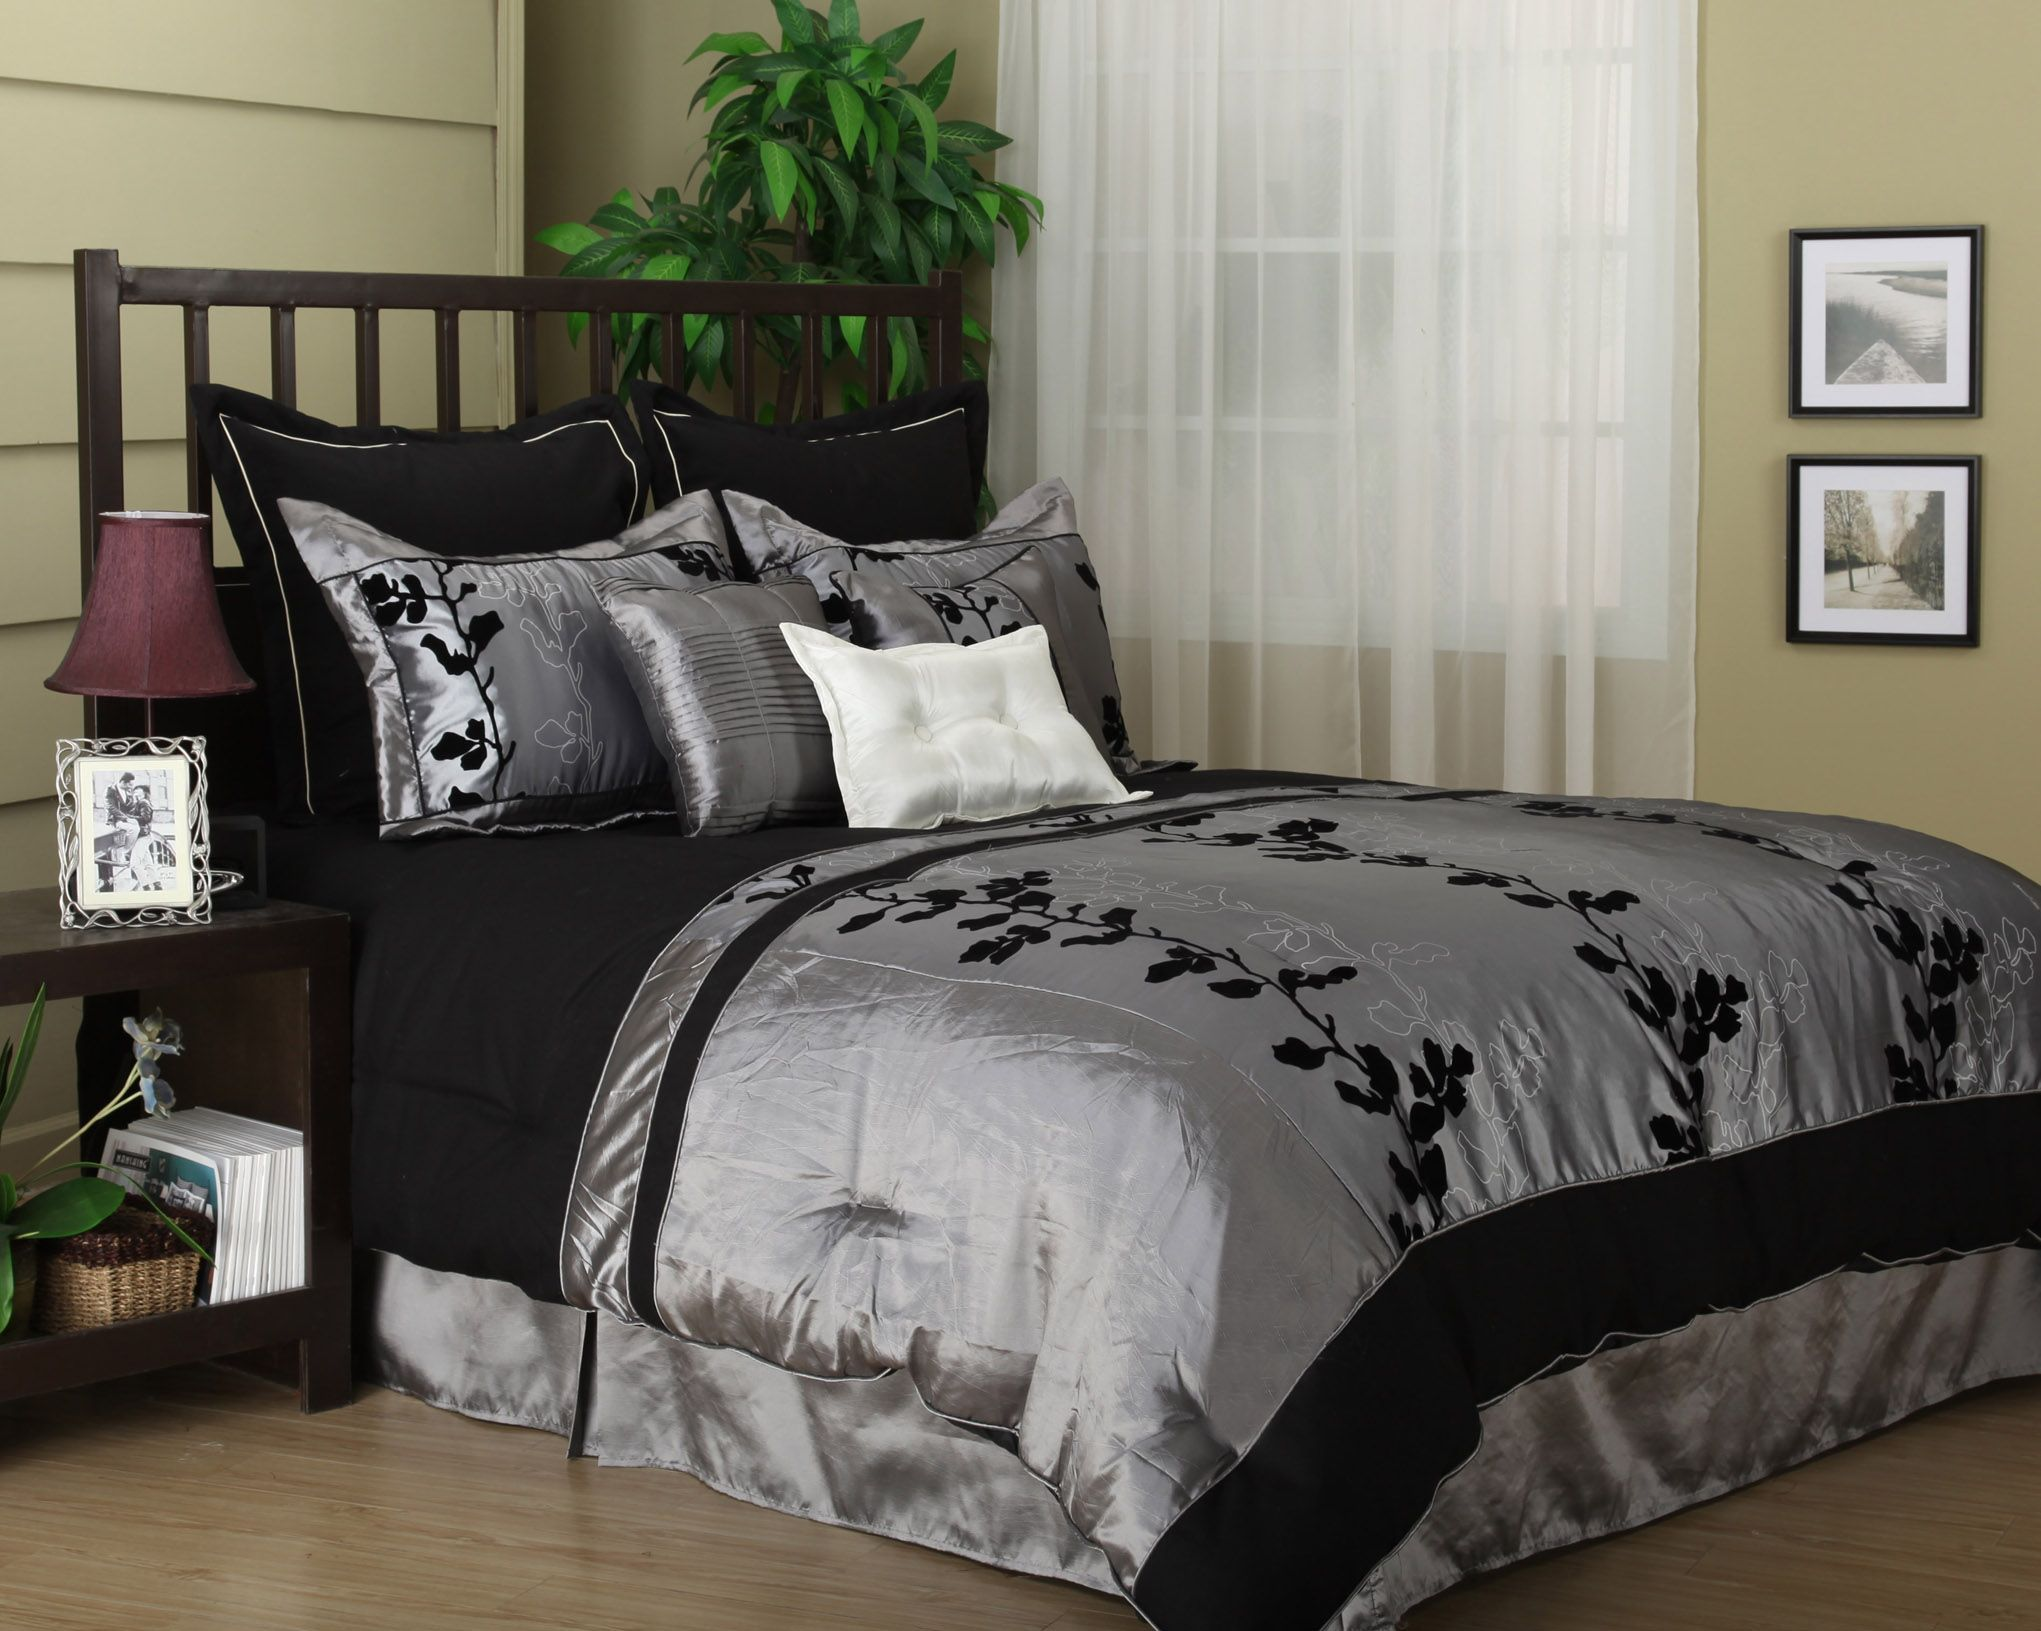 Best Silver Comforter Wendy Silver Black 7 Piece Comforter Set Bed In A Bag King Queen New 640 x 480